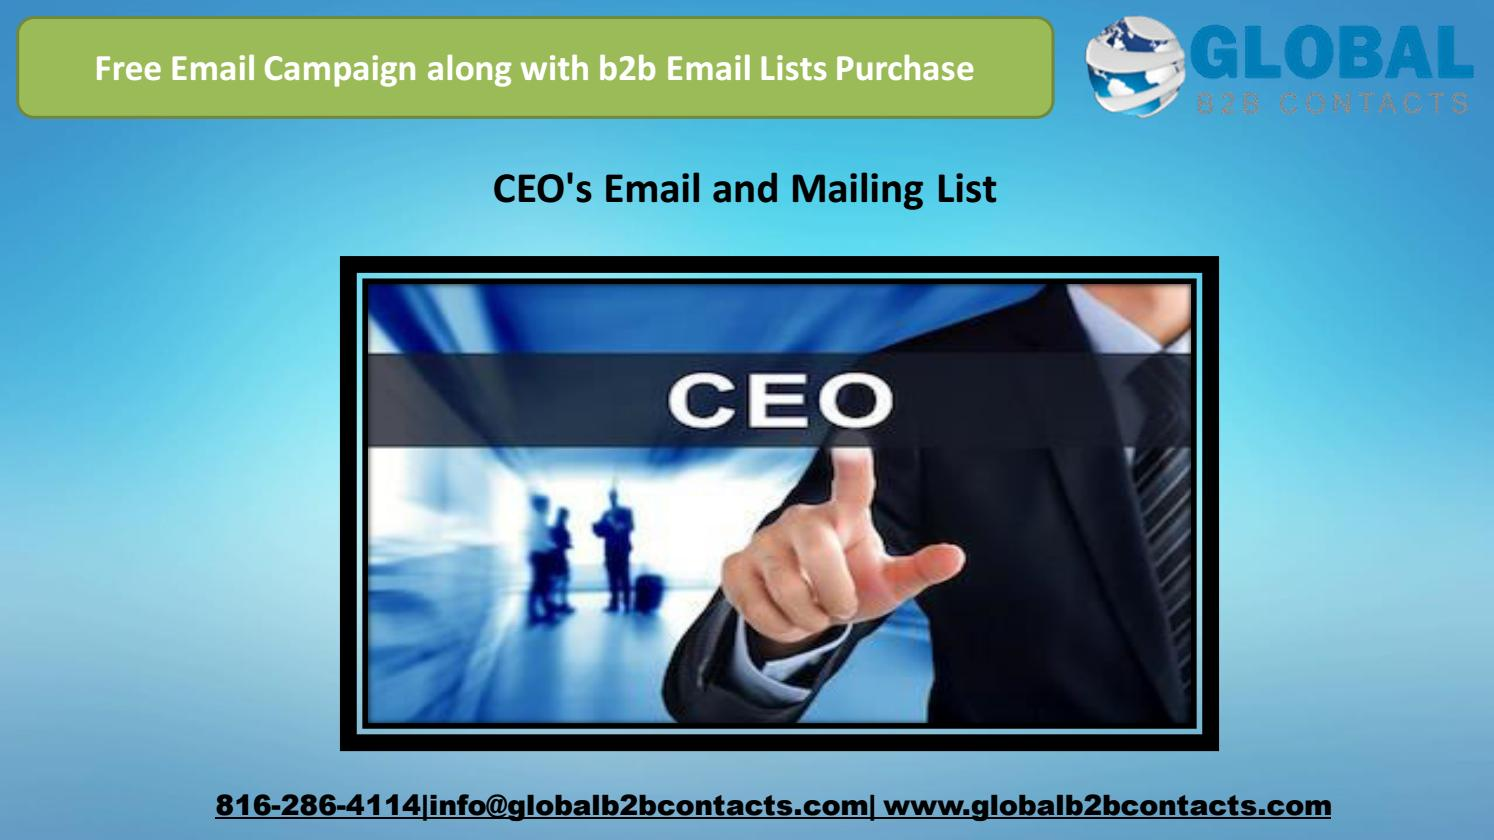 CEO's Email and Mailing List